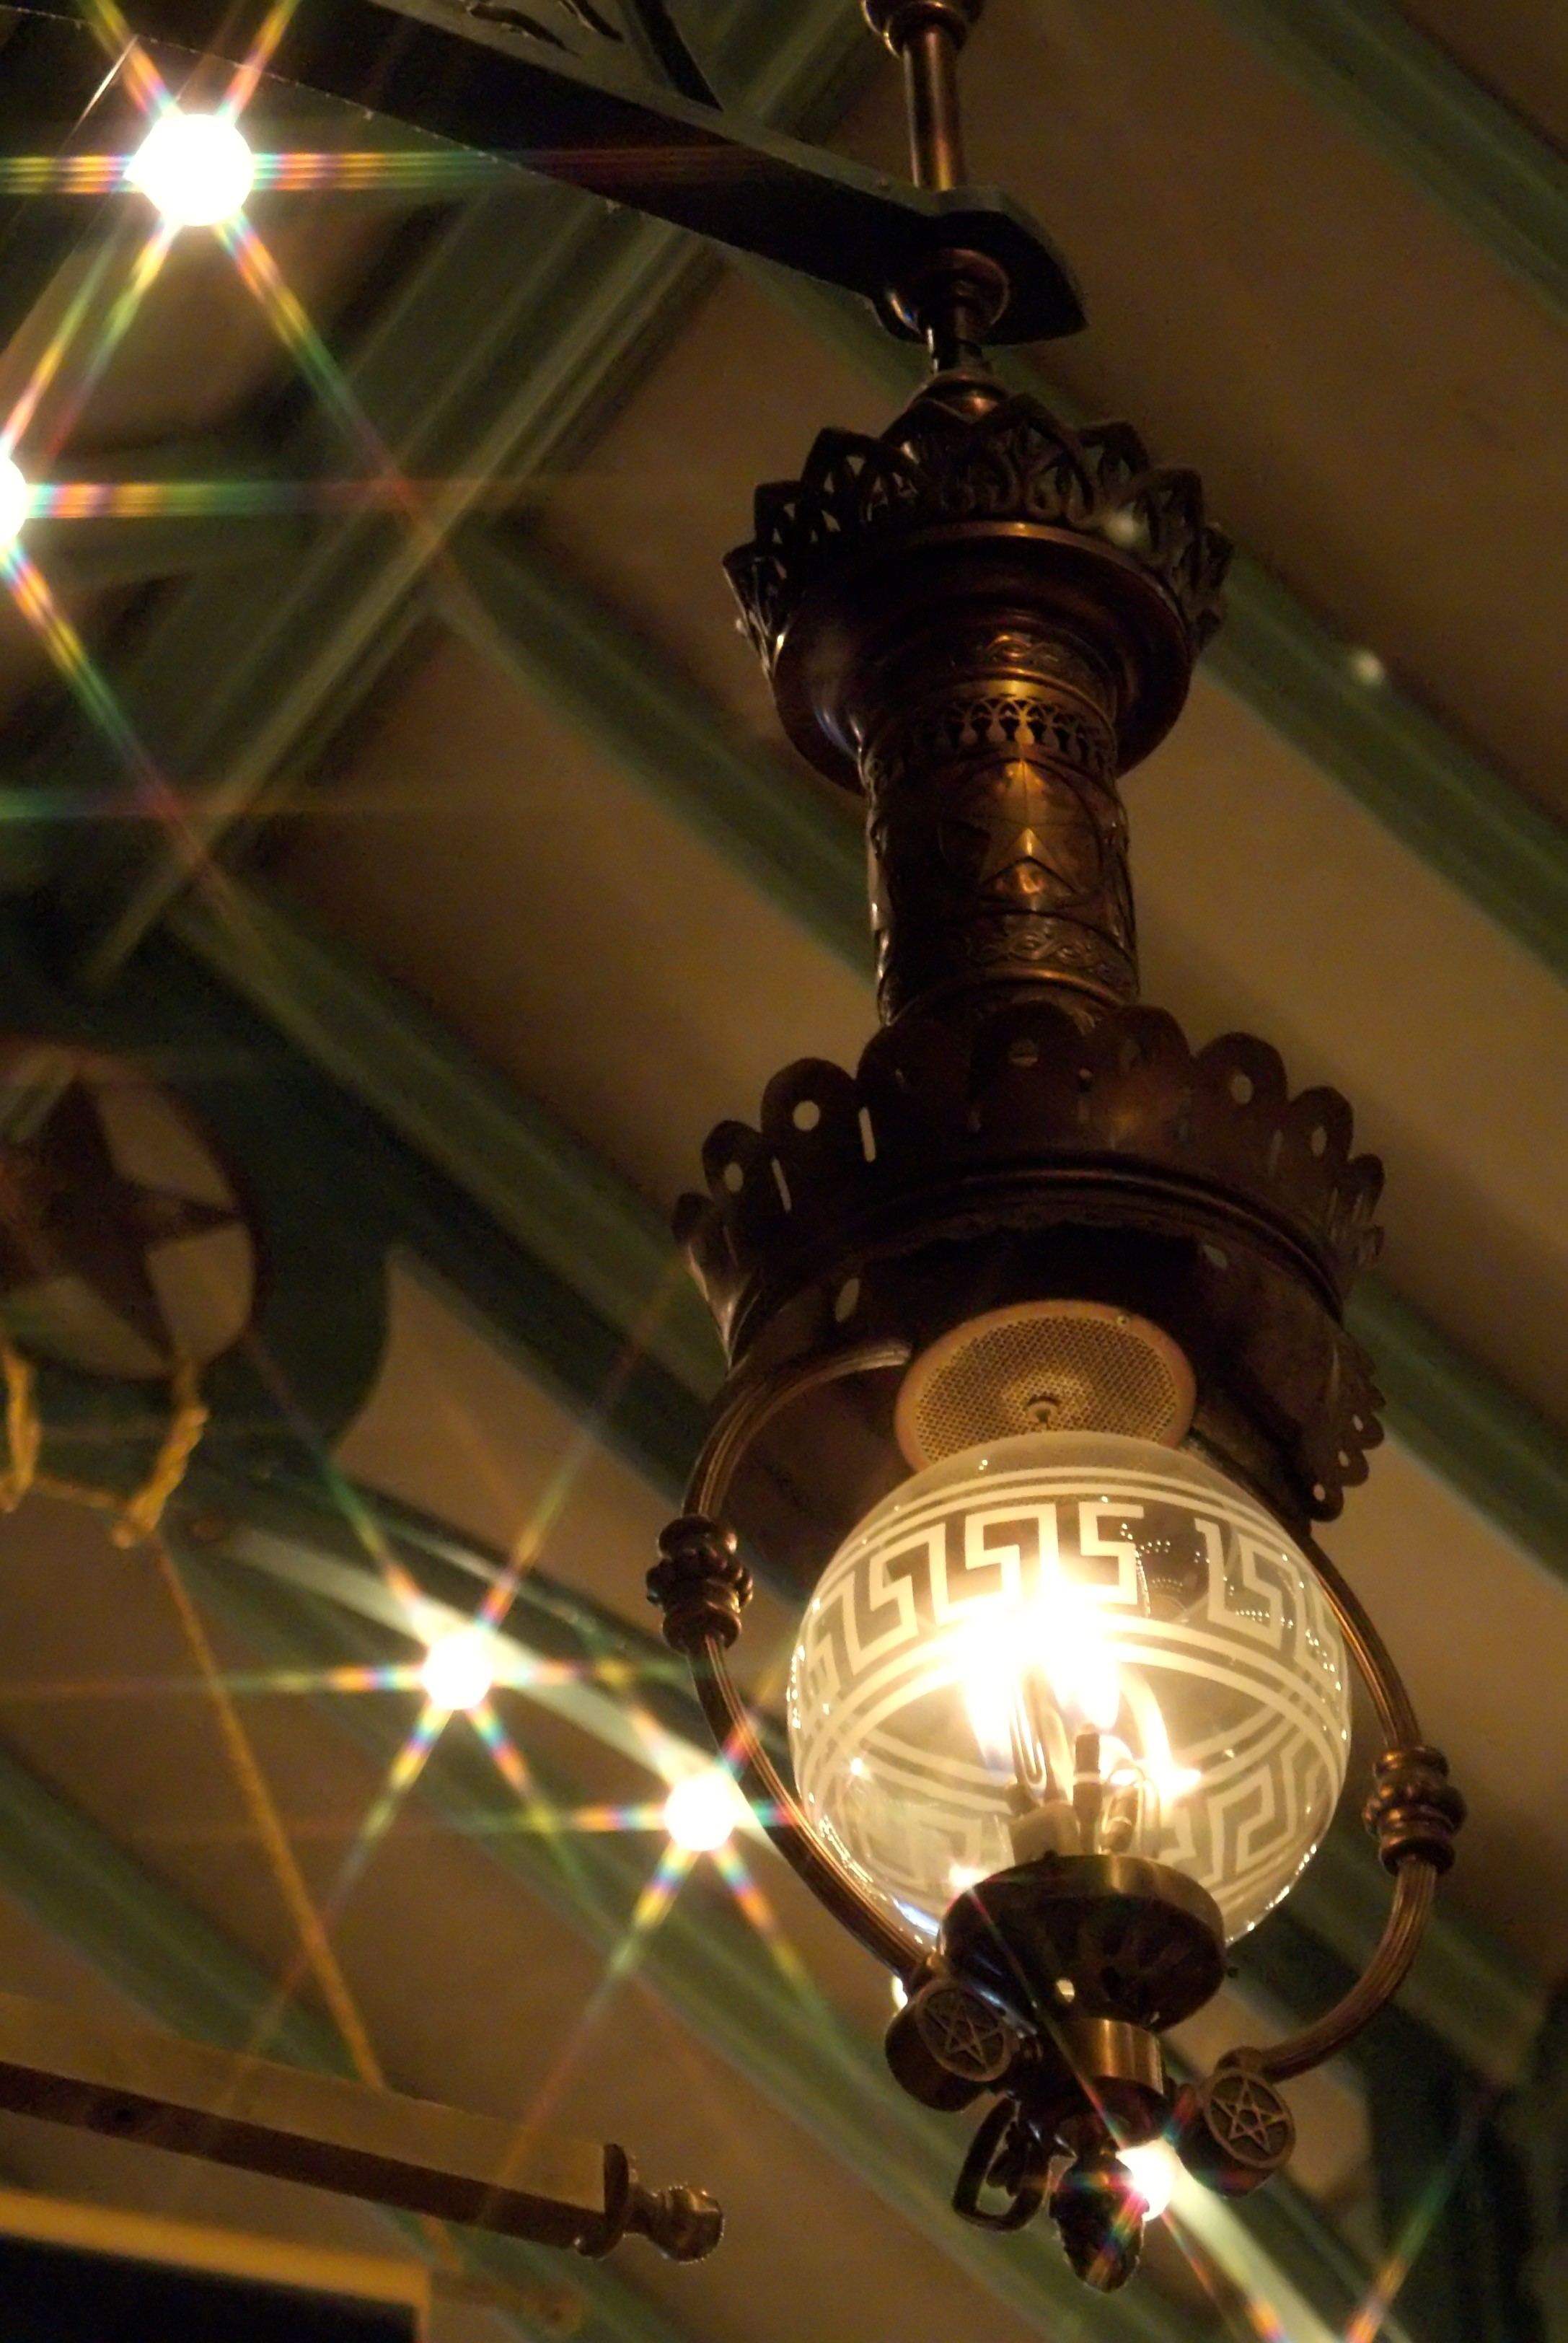 The battle for  real gaslights versus light bulbs  was not easily won, but in the end they proved to be what sets the arcades apart. Made by Sugg Lighting of England, they tell the story of a small town in transition from Gas to the new Electric light. .